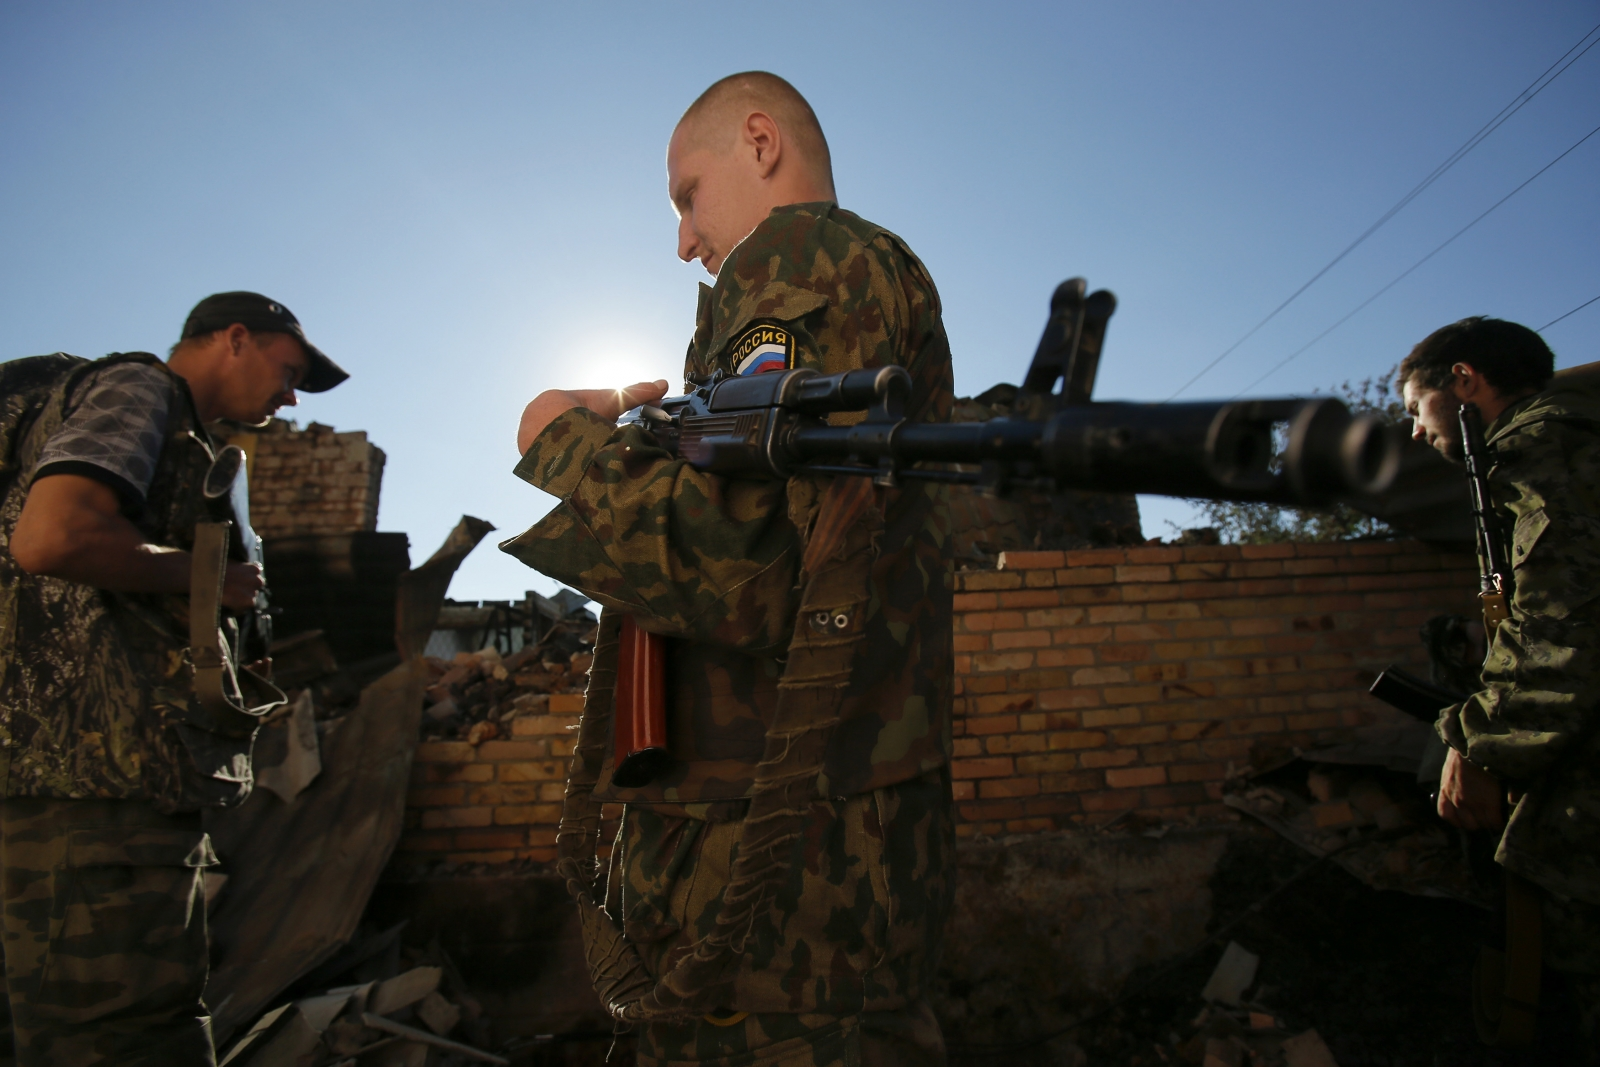 Ukraine crisis and ceasefire agreement